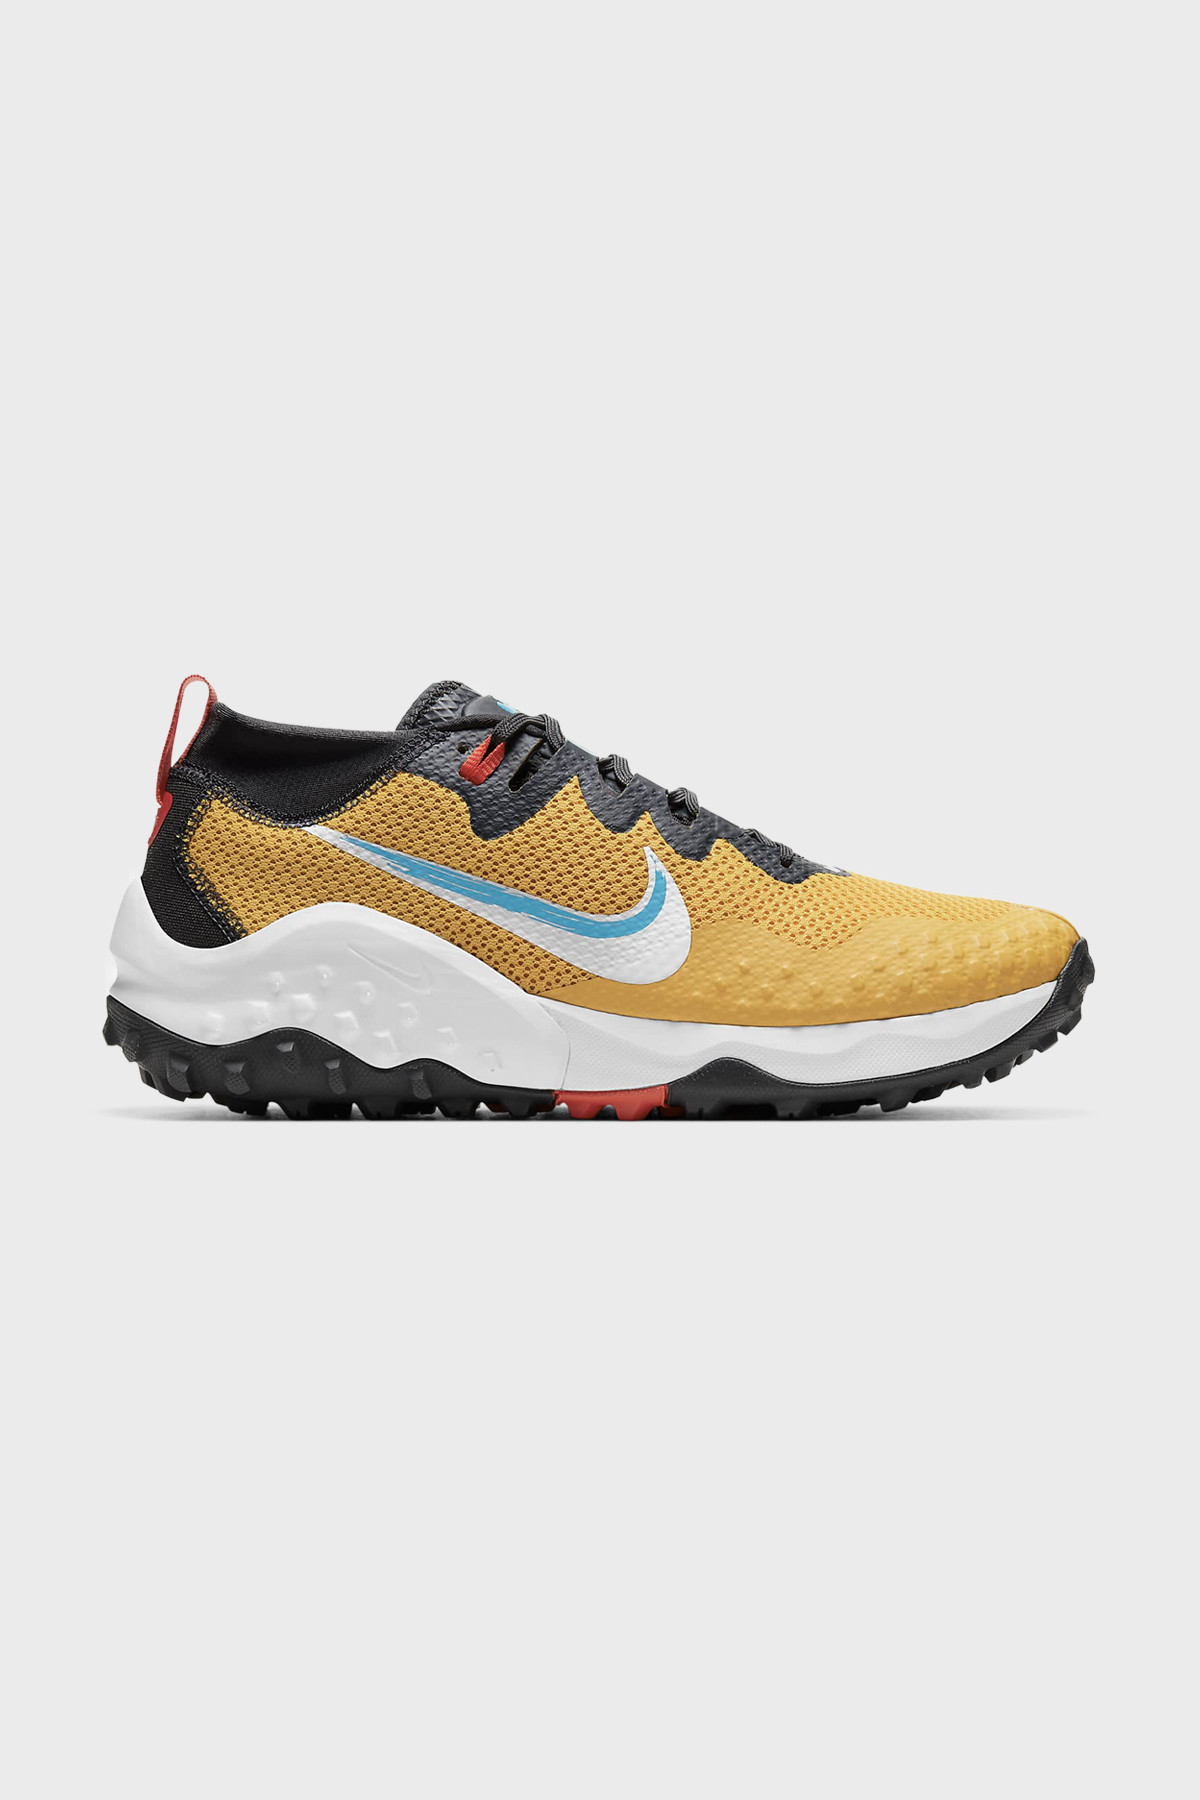 NIKE TRAIL - WILDHORSE 7 - DARK SULFUR PURE PLATINUM